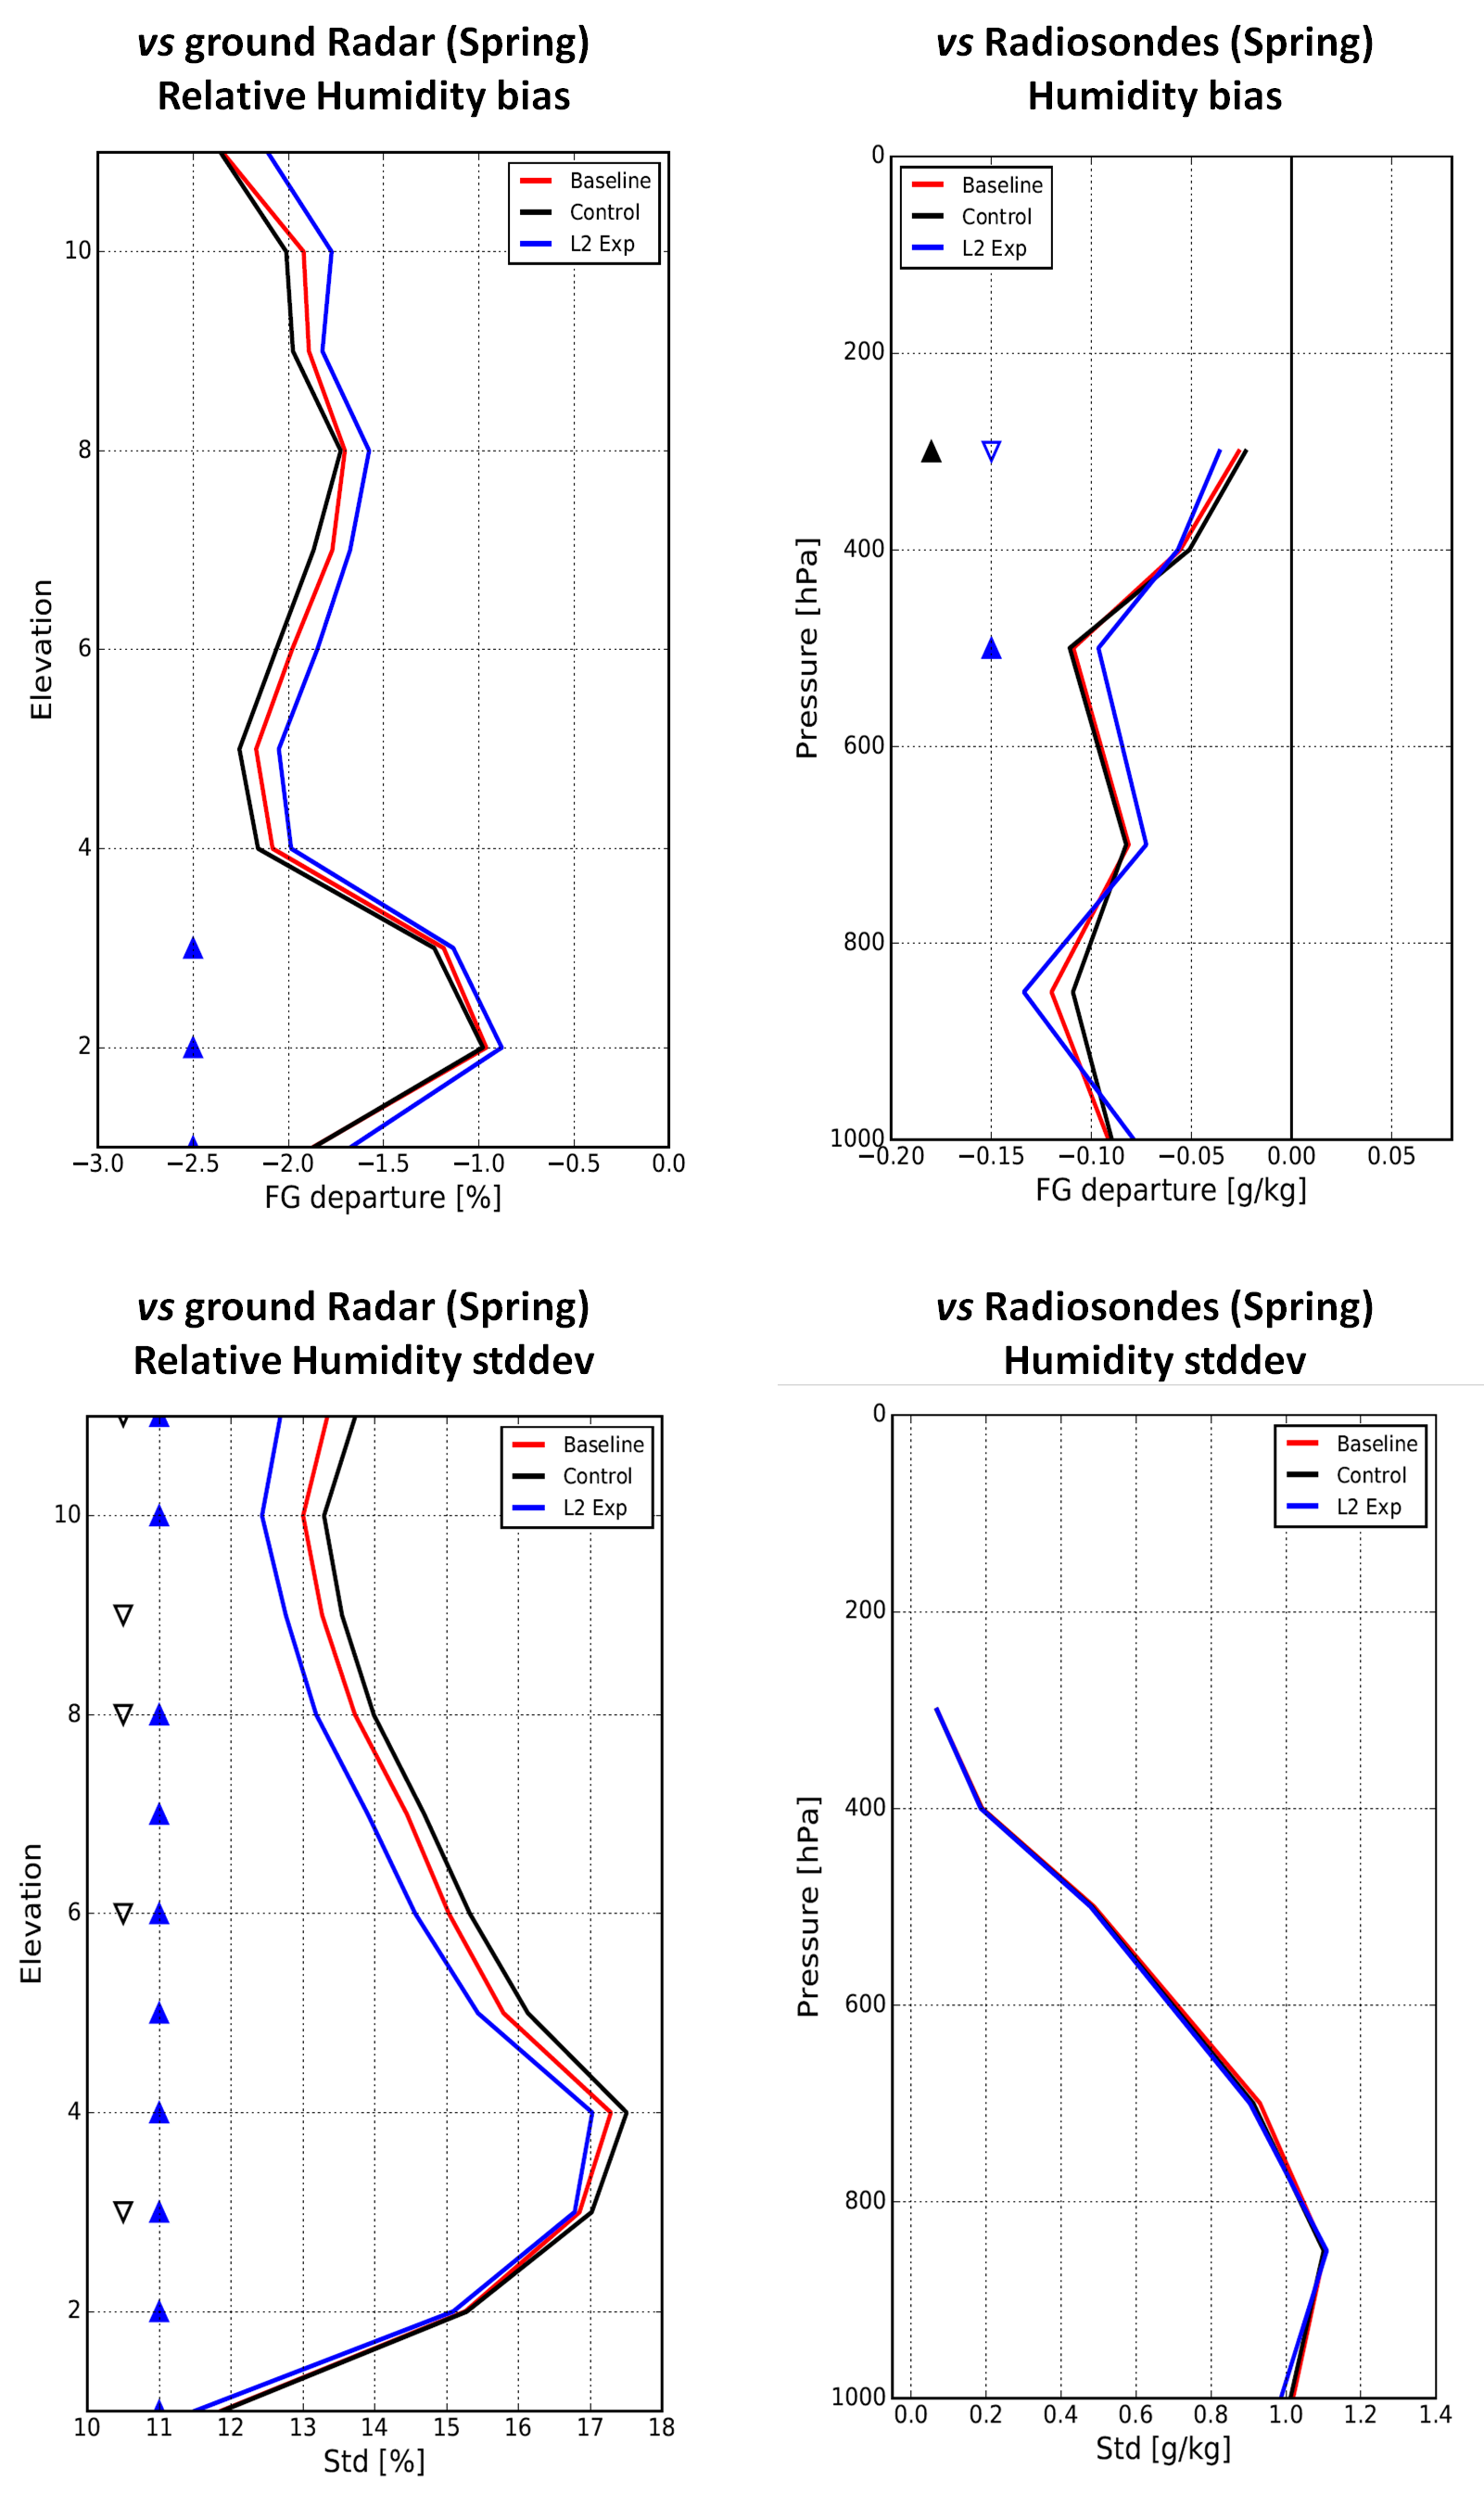 Humidity forecasts vs ground Radar (%RH, left) and Radiosonde (specific humidity, right) measurements, bias (top) and standard deviation (bottom) in Spring 2018. Red: Baseline, Black: Control w. radiance, Blue: L2 experiments